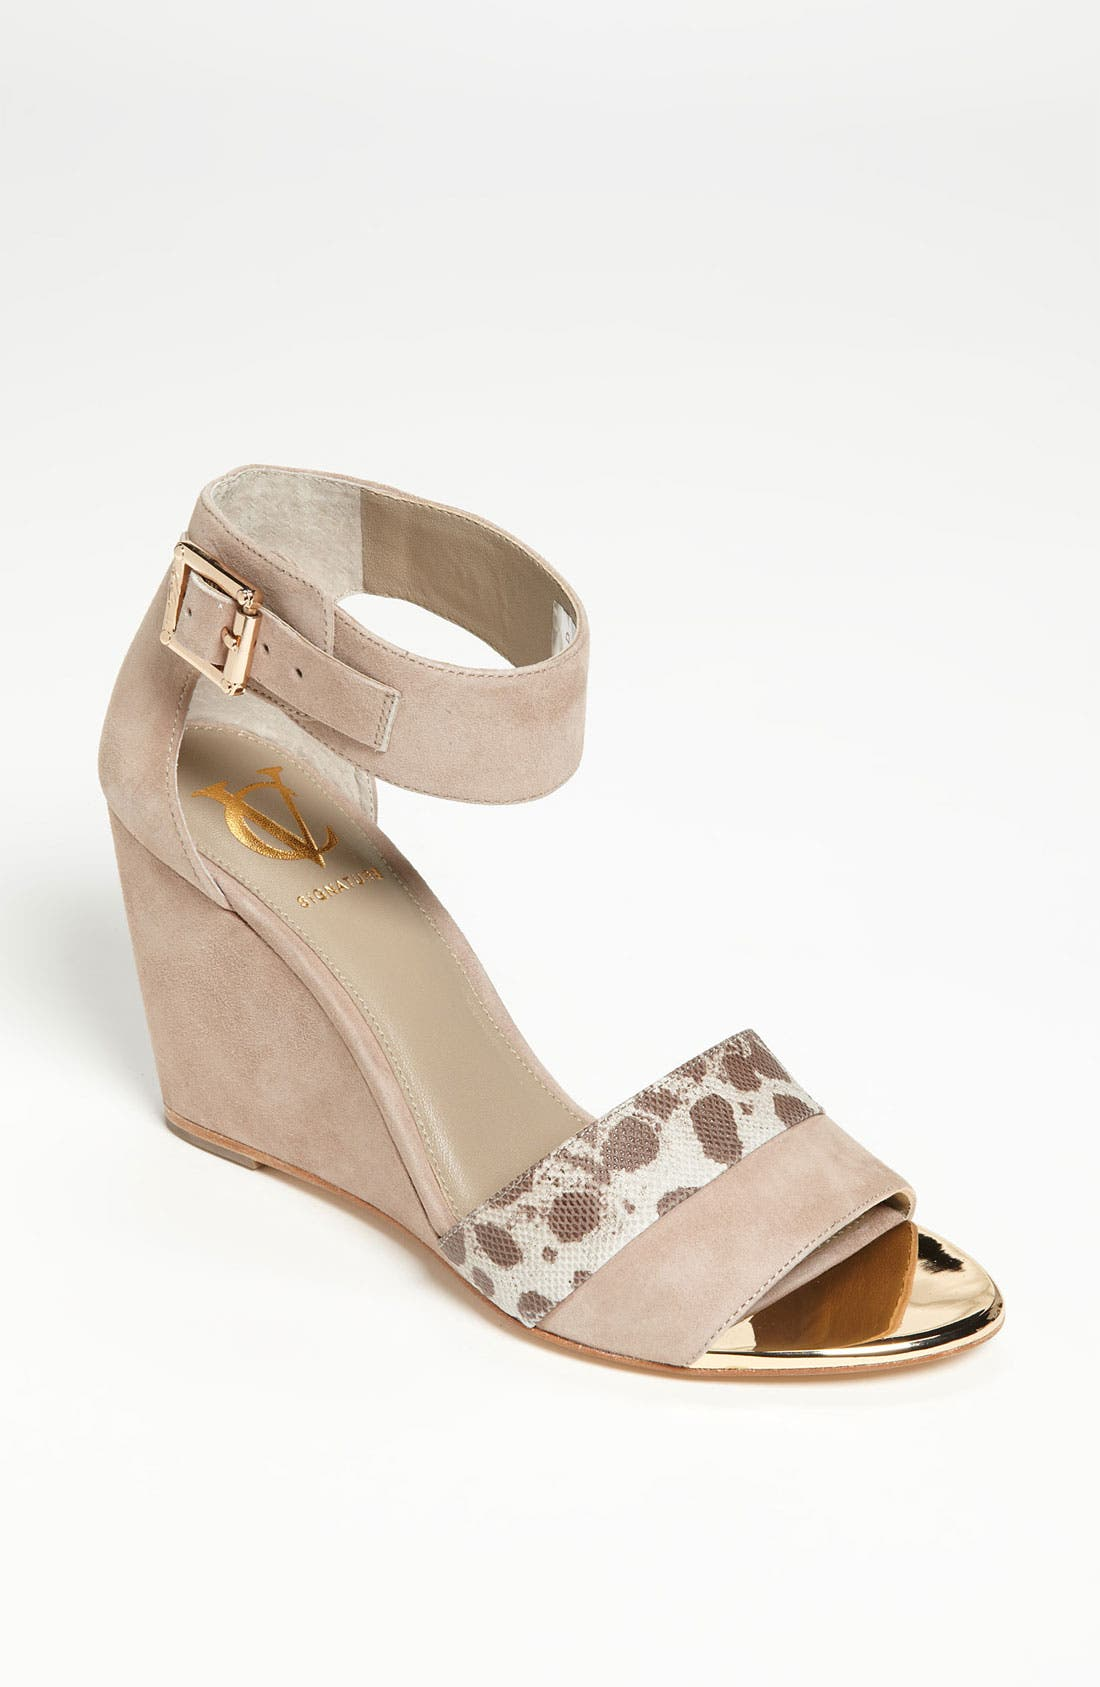 Alternate Image 1 Selected - VC Signature 'Imogene' Sandal